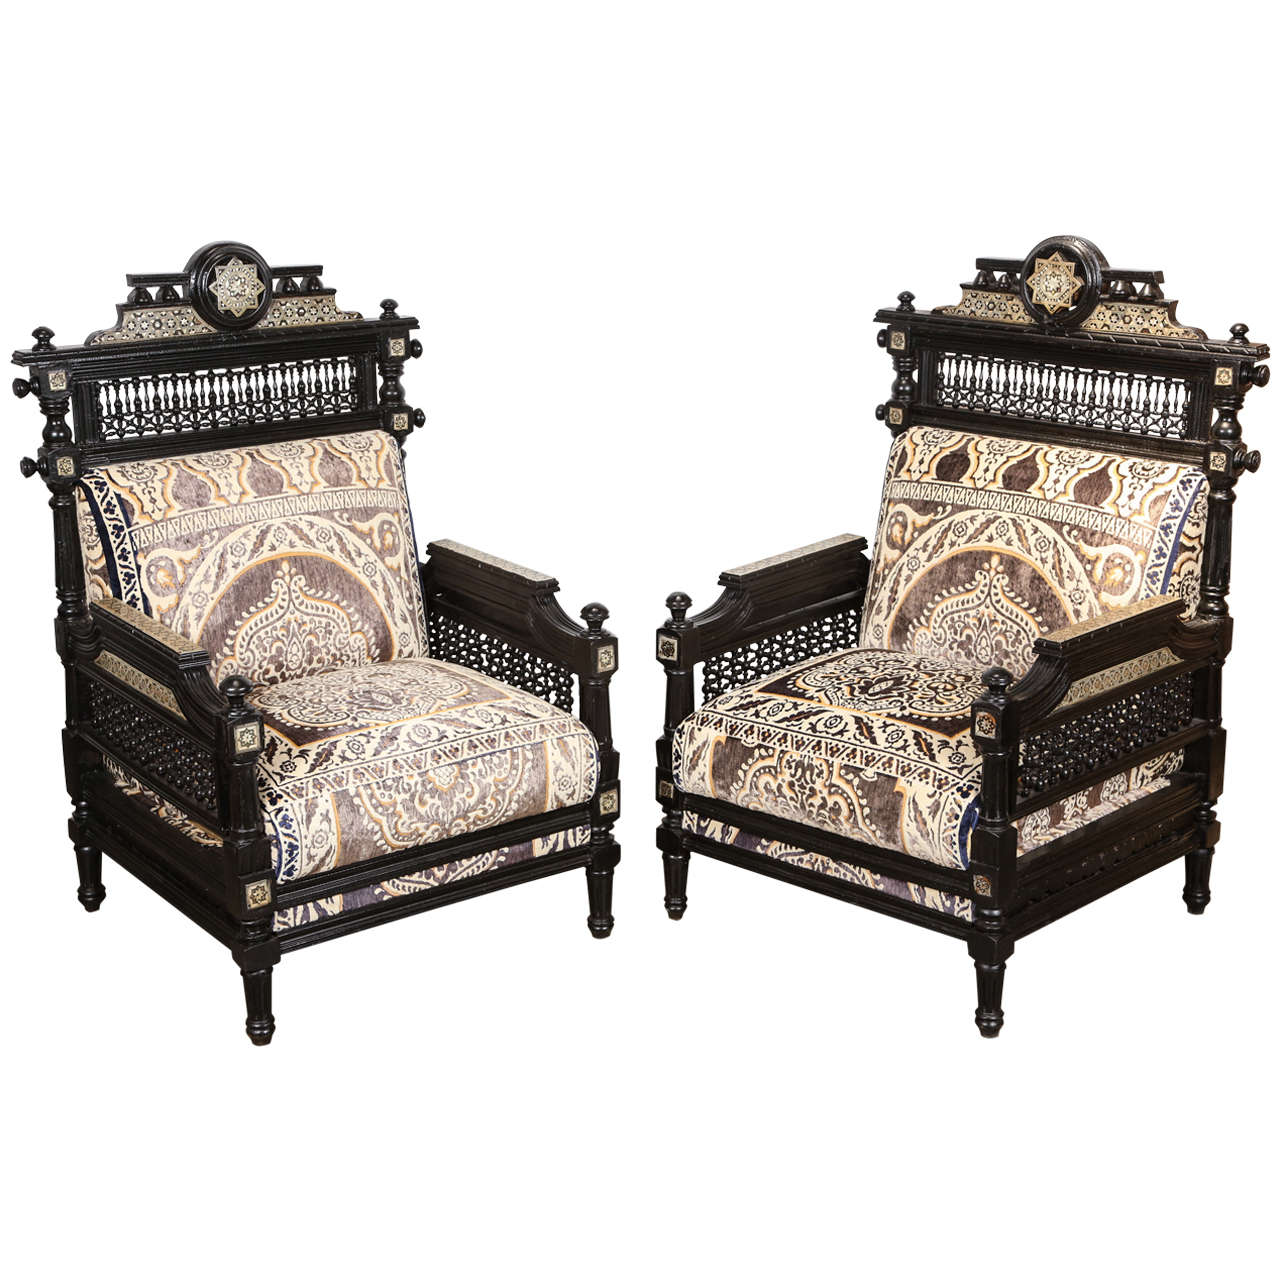 Antique Syrian Moorish Style Black Armchairs For Sale - Antique Syrian Moorish Style Black Armchairs For Sale At 1stdibs